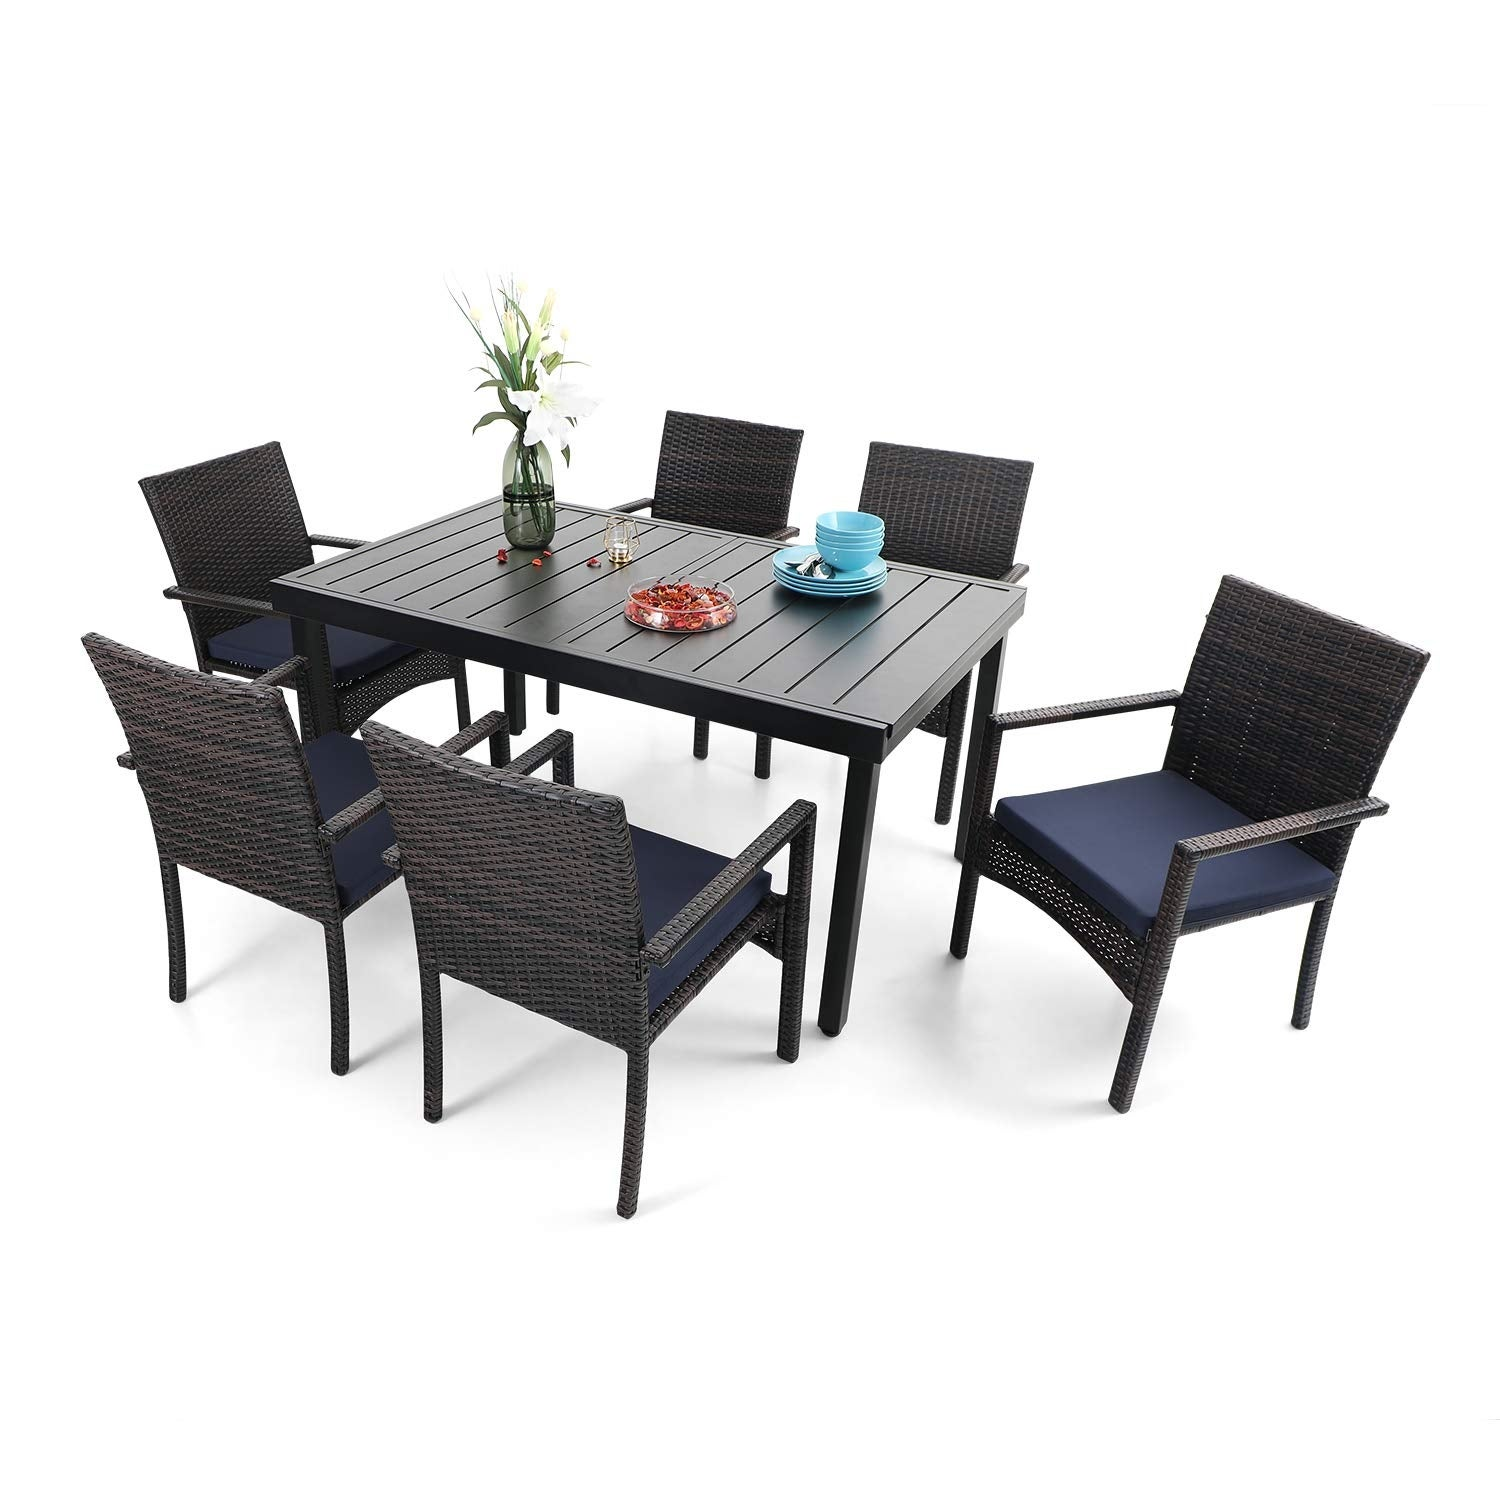 Phi Villa Seats Of 6 8 Outdoor Dining Table Sets Expandable Rectangular Metal Dining Table And 6 Rattan Chairs Overstock 32355295